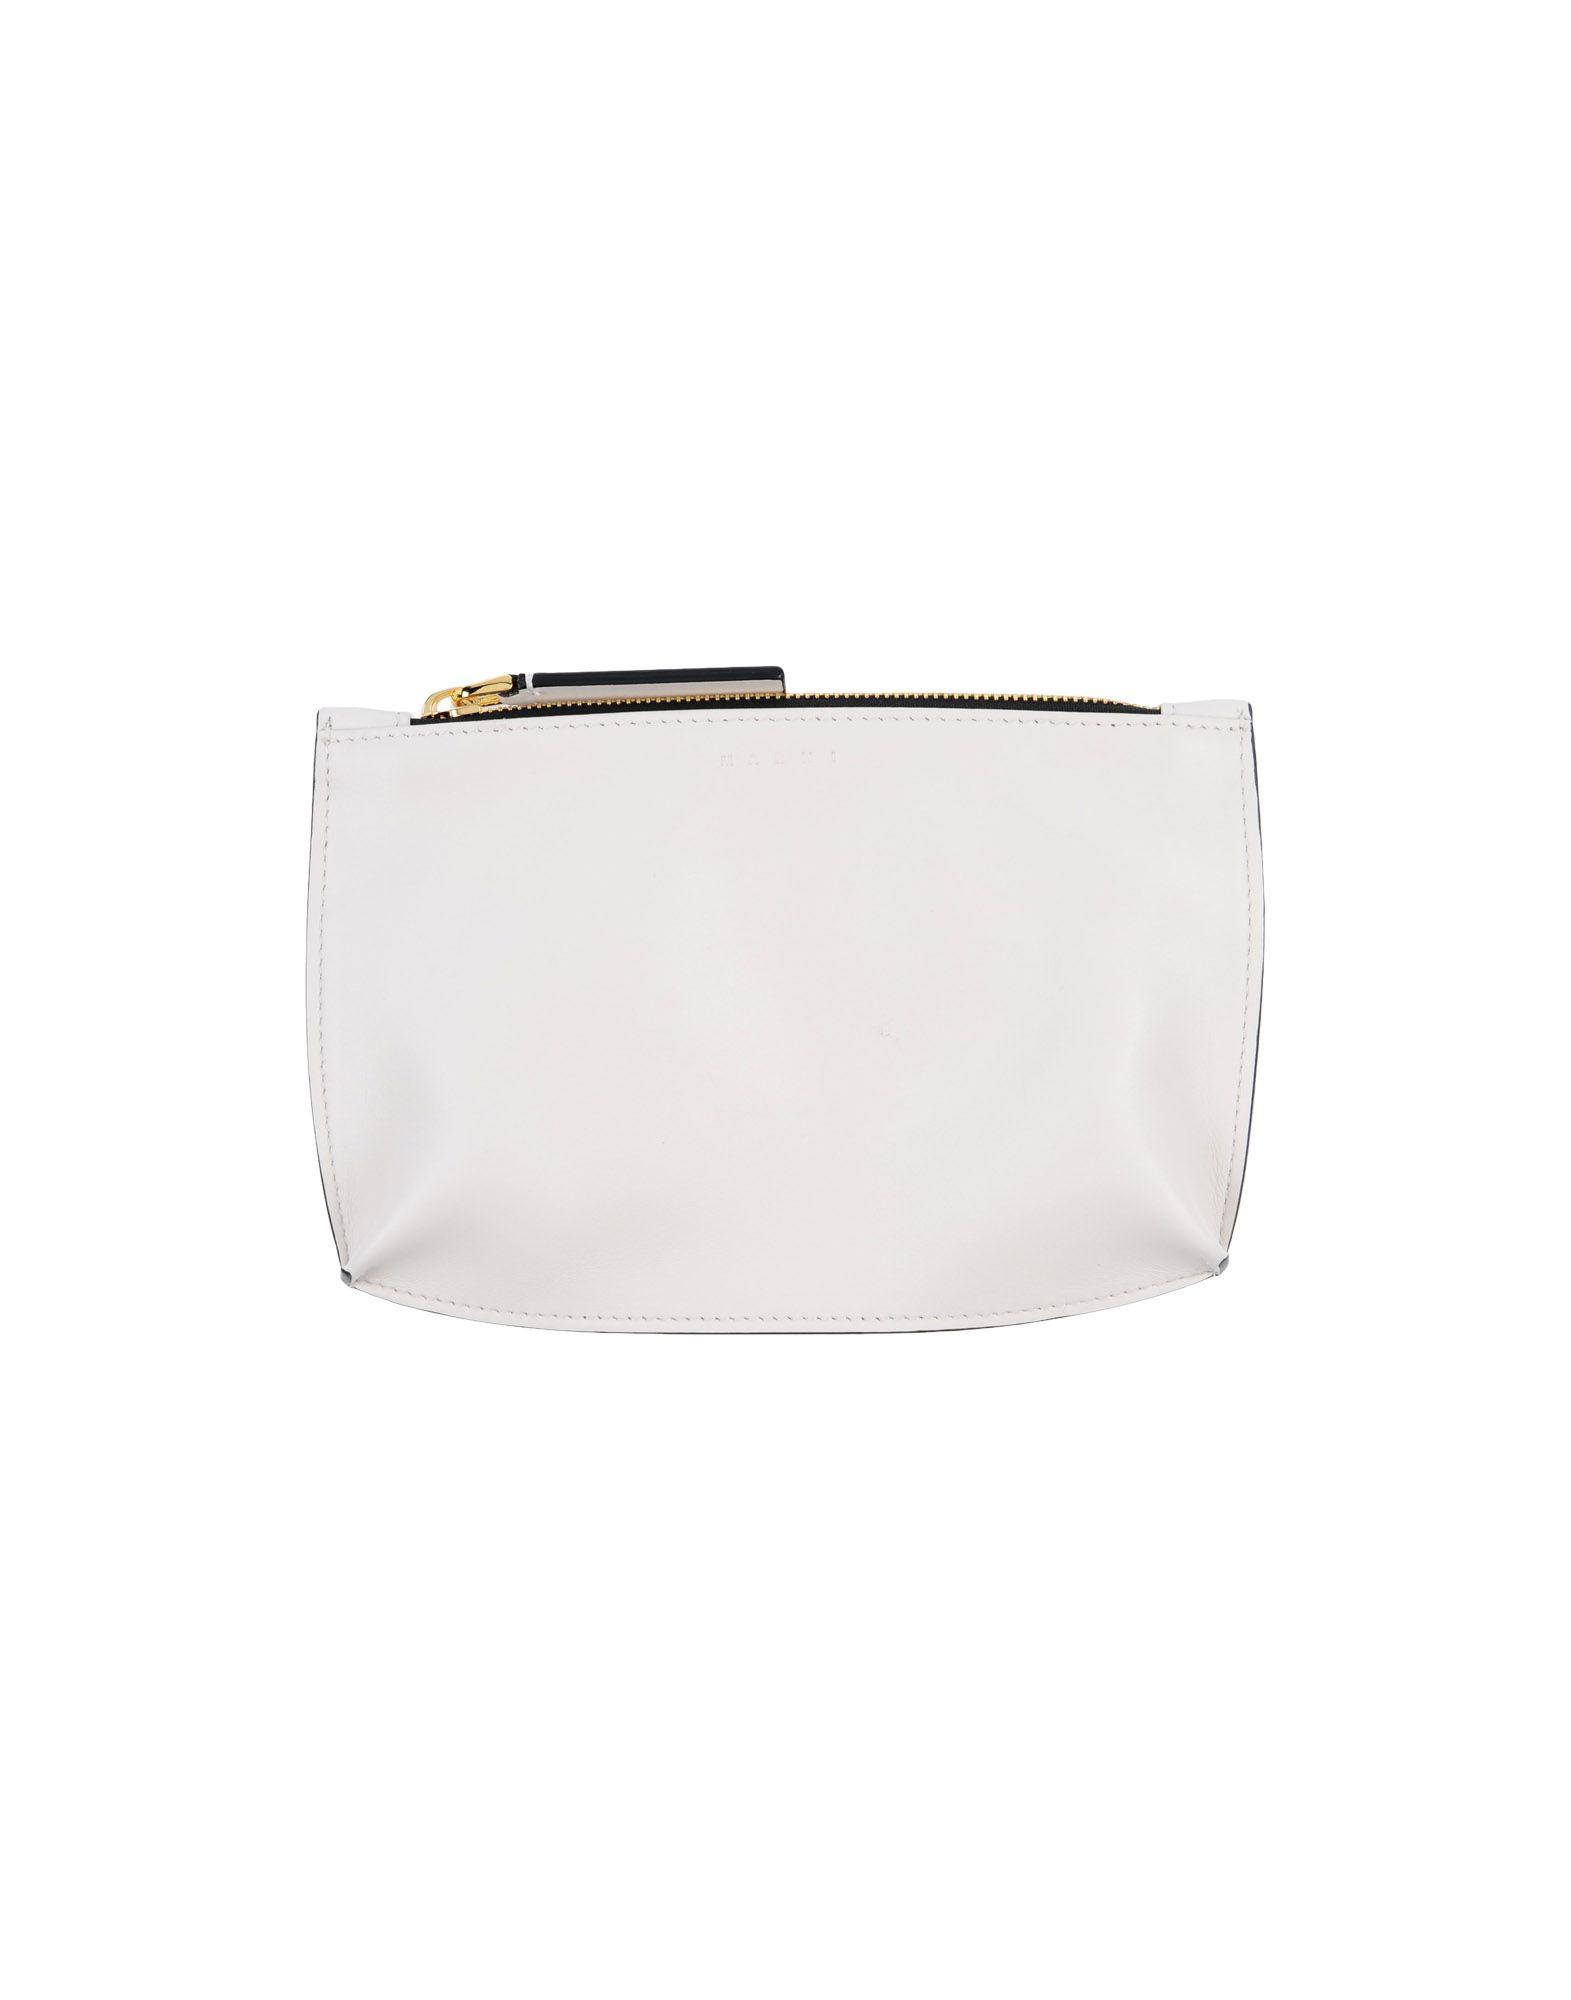 fe0a23018c776 Marni Pouch in White - Lyst